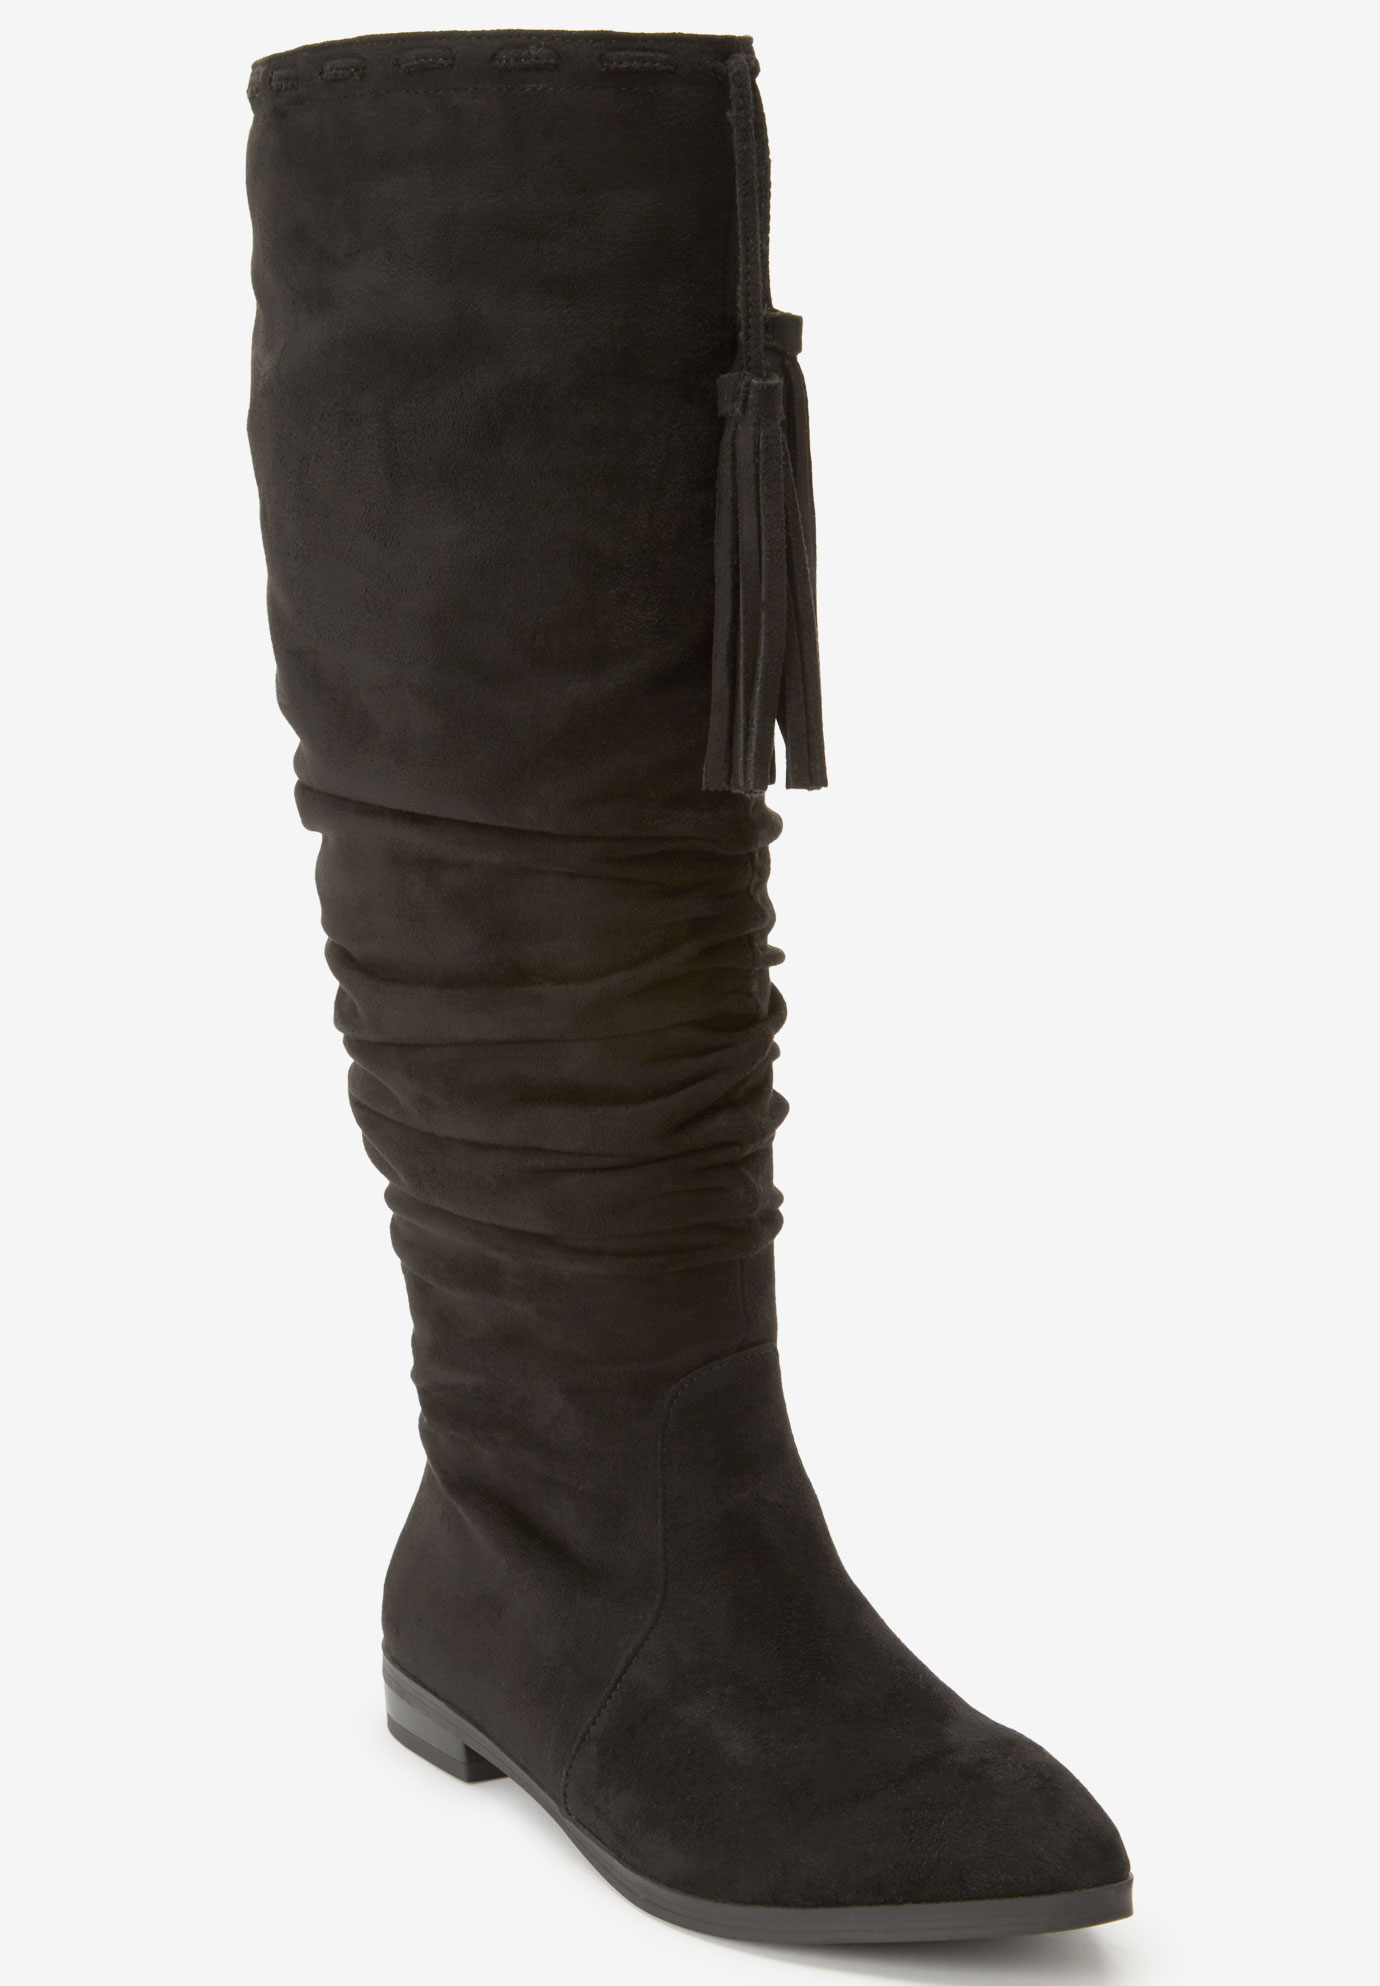 The Adelyn Wide Calf Boot by